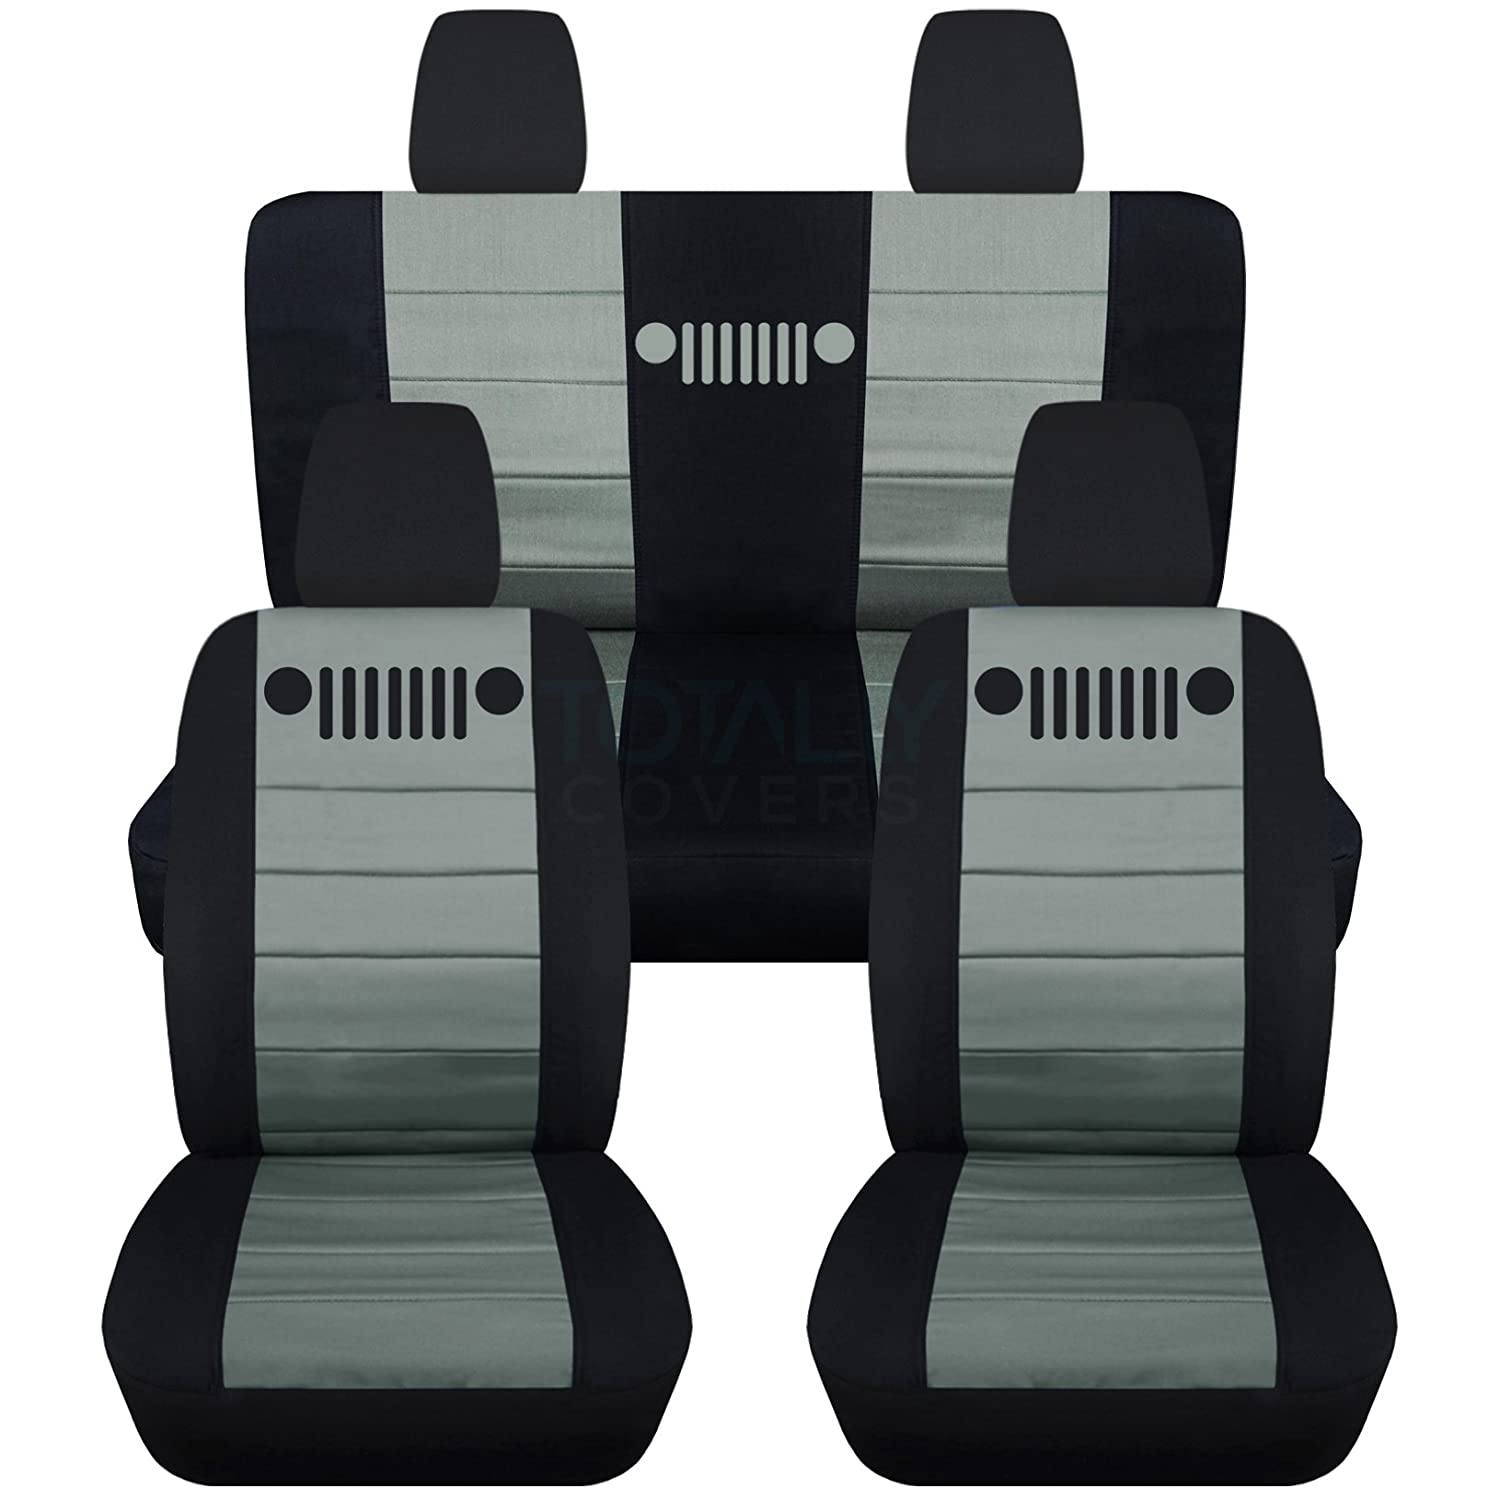 Admirable Totally Covers Fits 2011 2018 Jeep Wrangler Jk Seat Covers Black Silver Full Set Front Rear 23 Colors 2012 2013 2014 2015 2016 2017 Machost Co Dining Chair Design Ideas Machostcouk